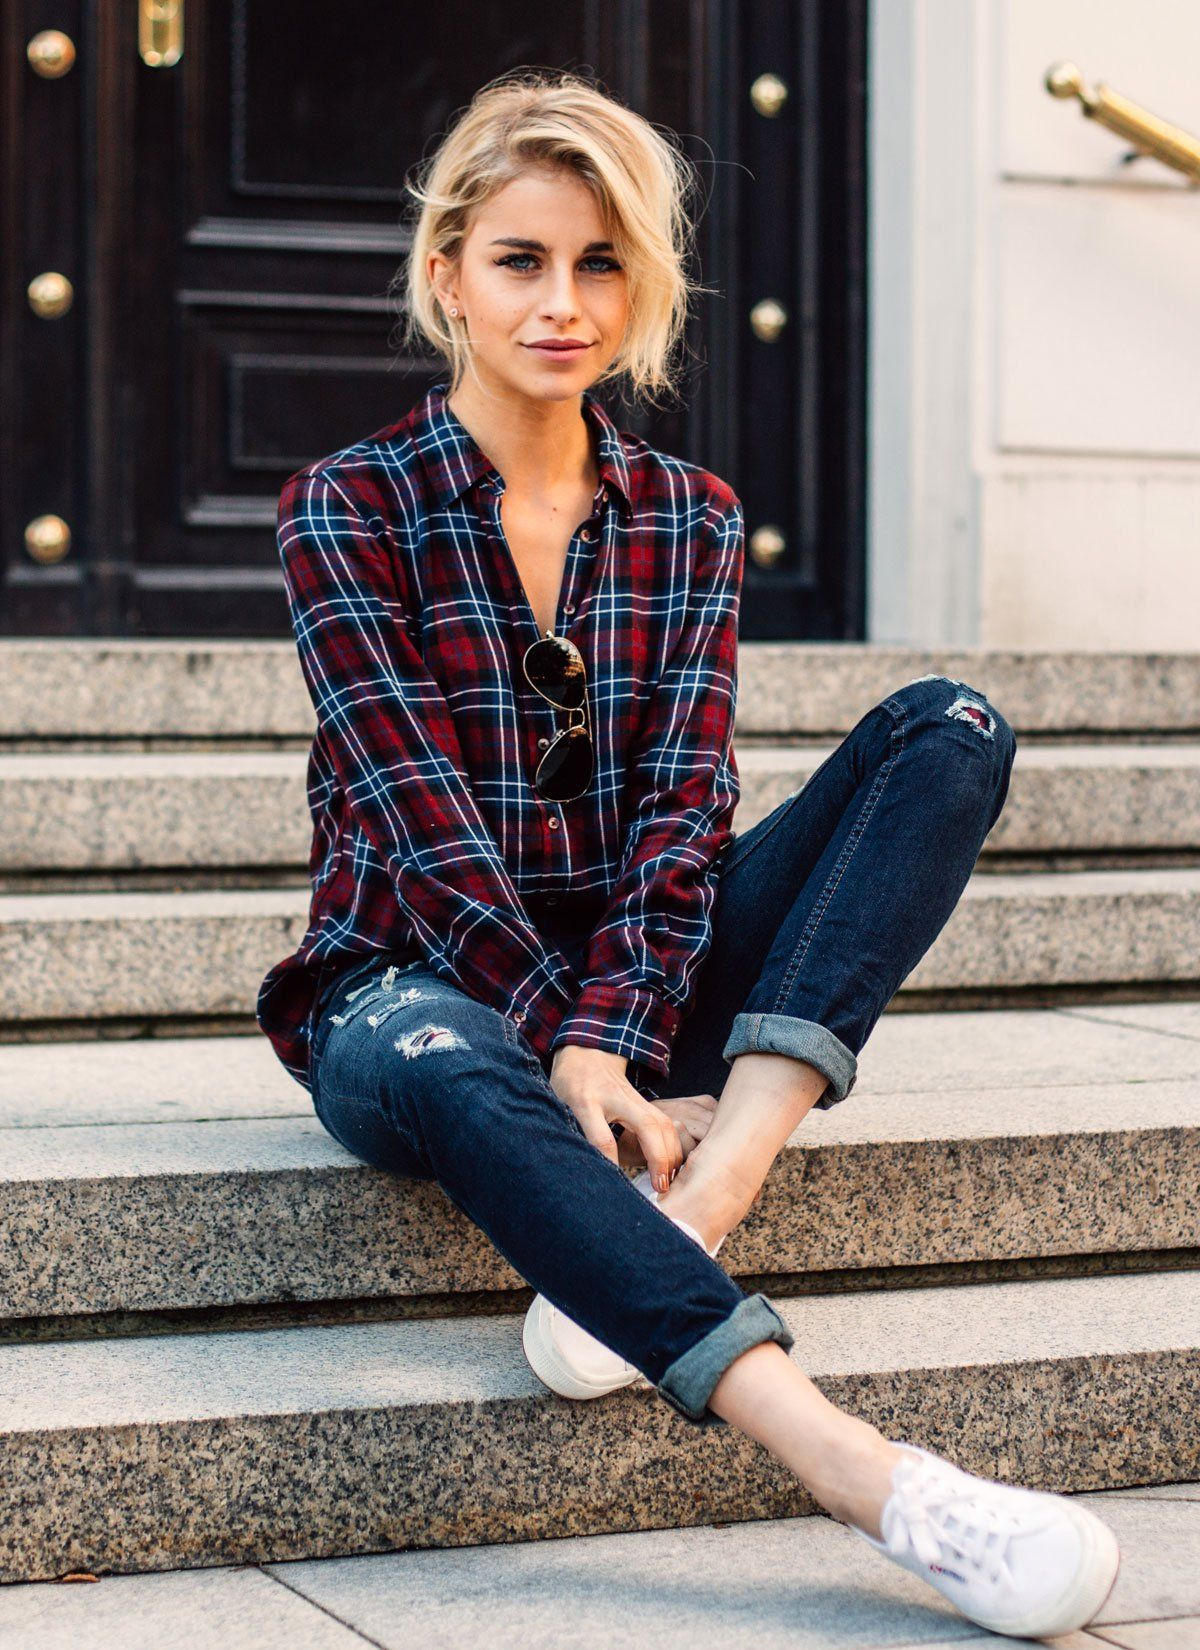 Woman red flannel outfits  Styletrend Herbst Lässig im Karohemd  Clothes Fashion and Wardrobes